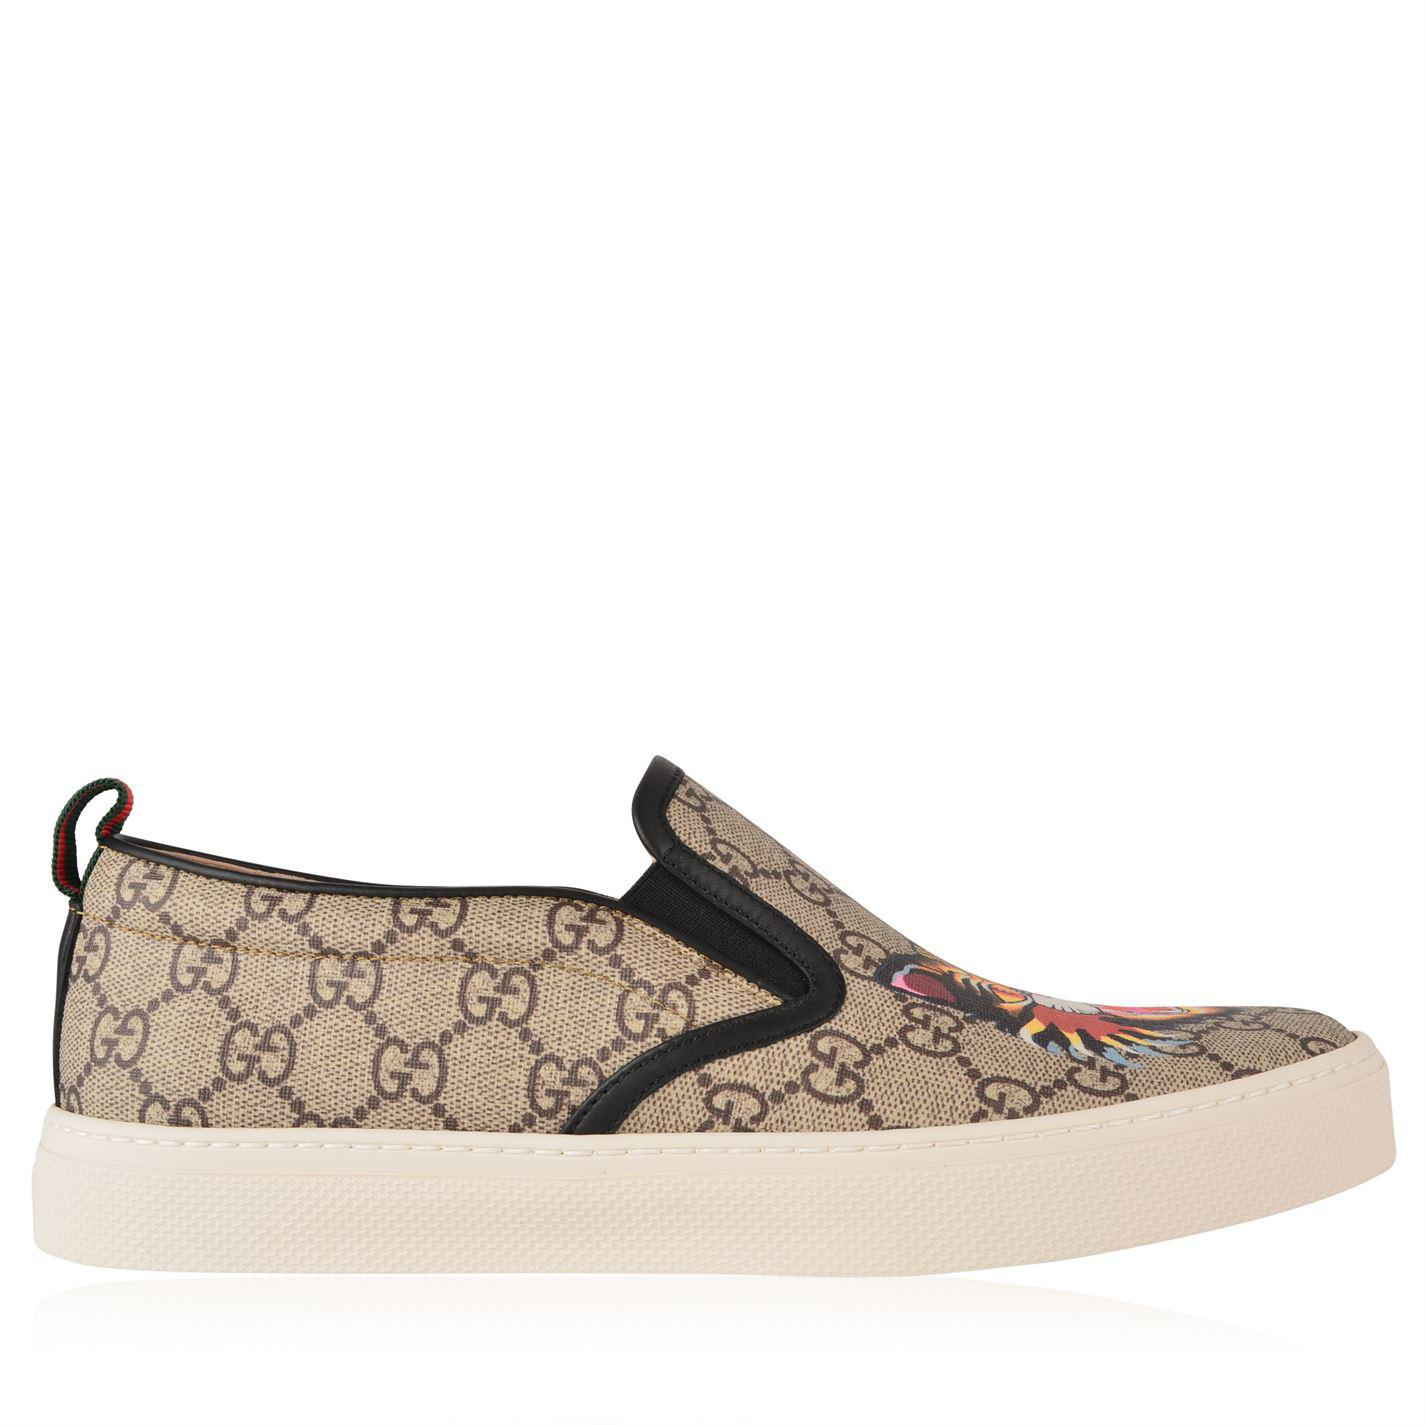 9ee4f29c6 Gucci Dublin Gg Angry Cat Trainers for Men - Lyst